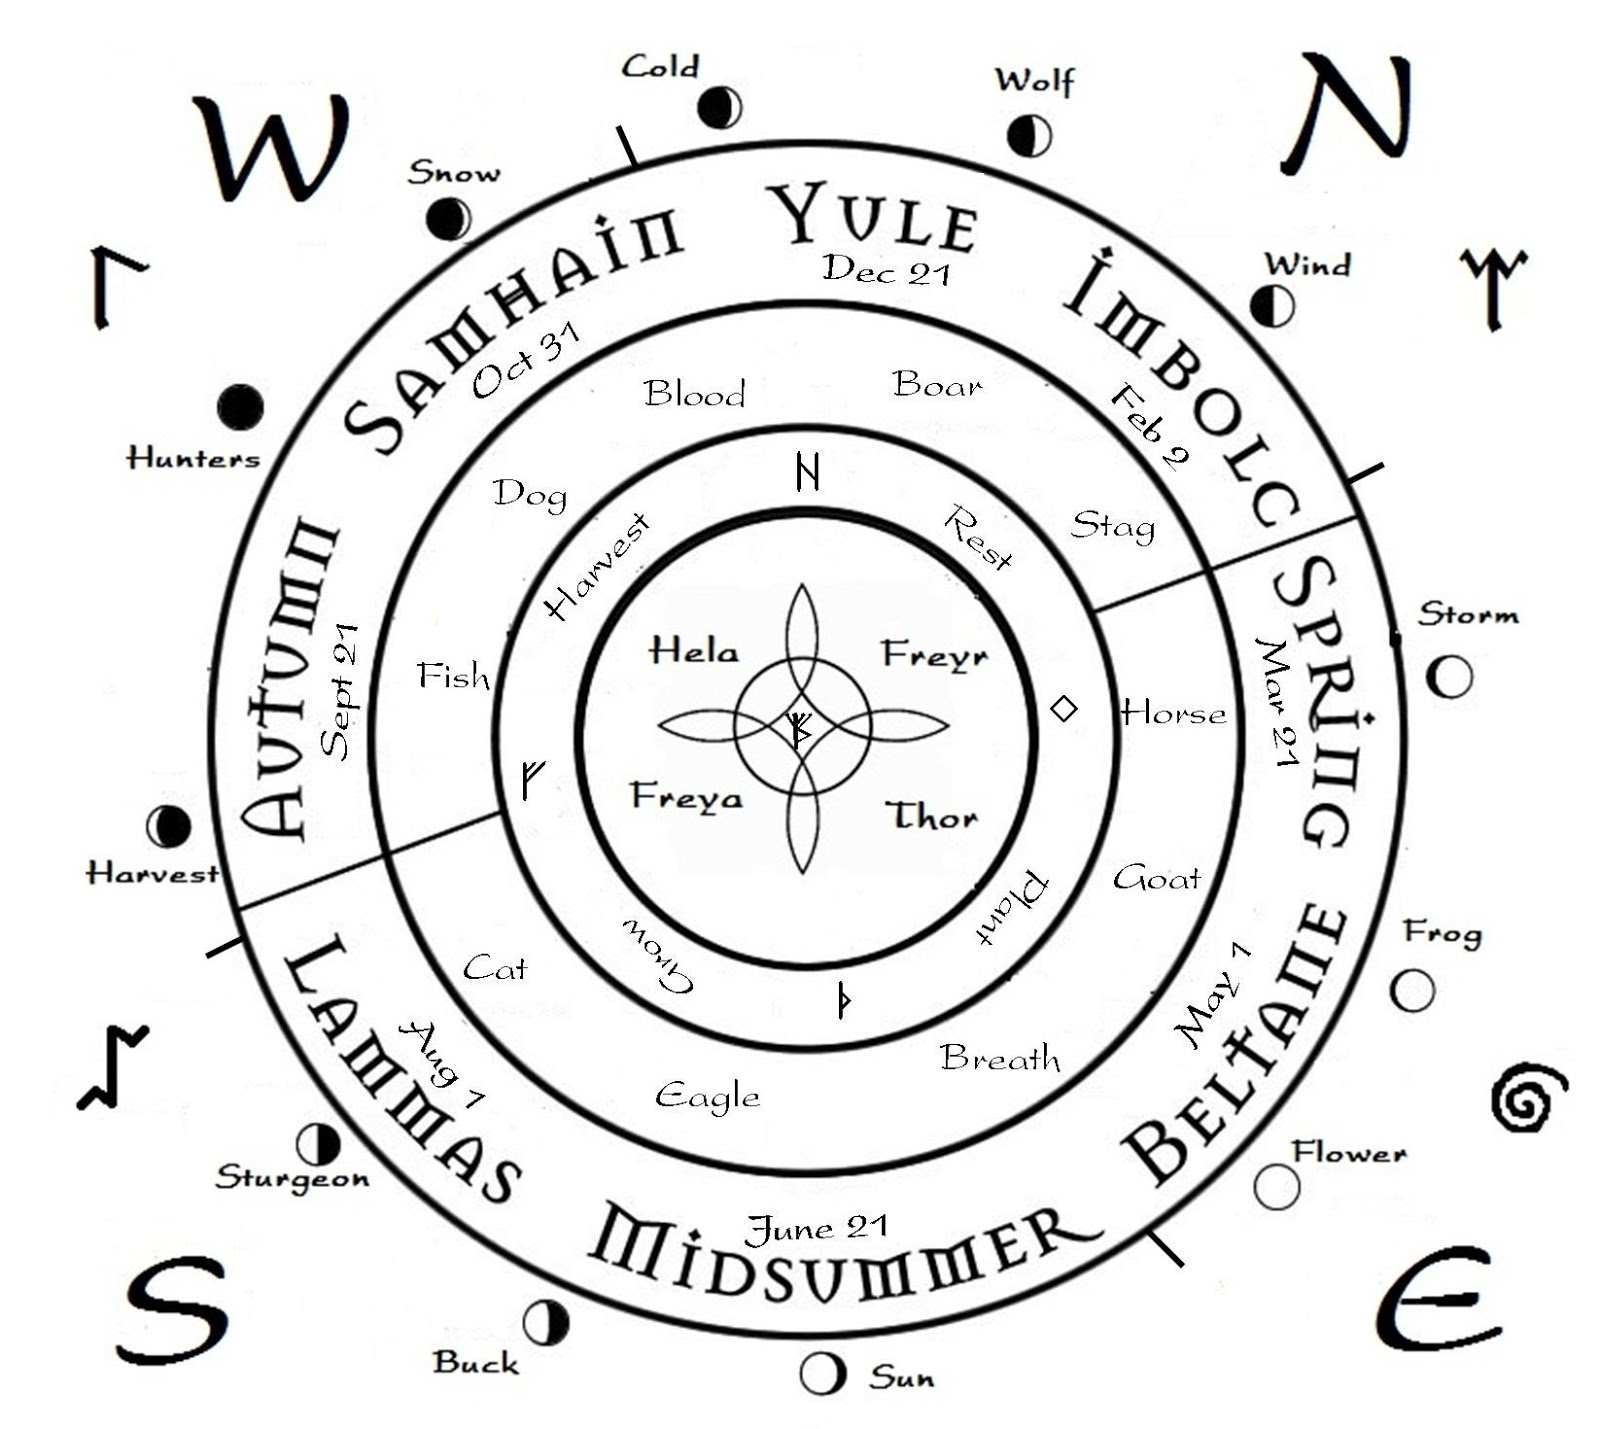 Nordic Wiccan August